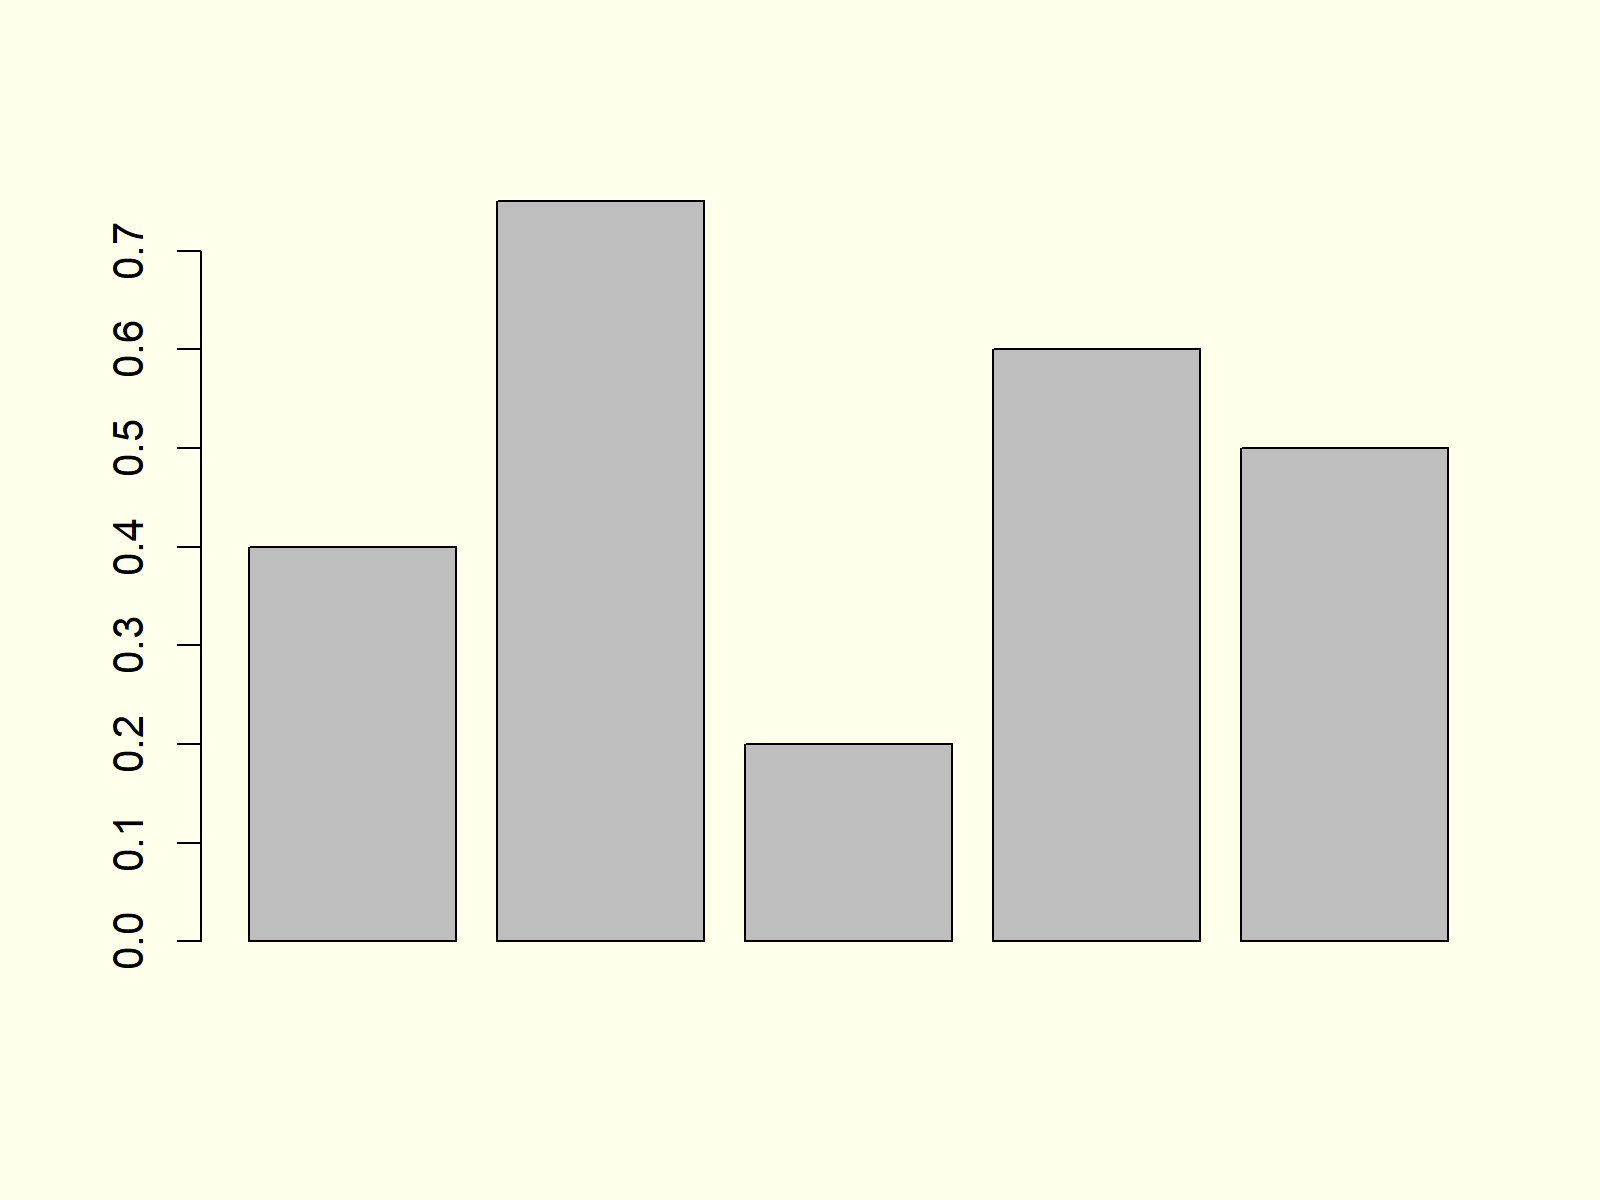 Example 1 Barchart in R Programming